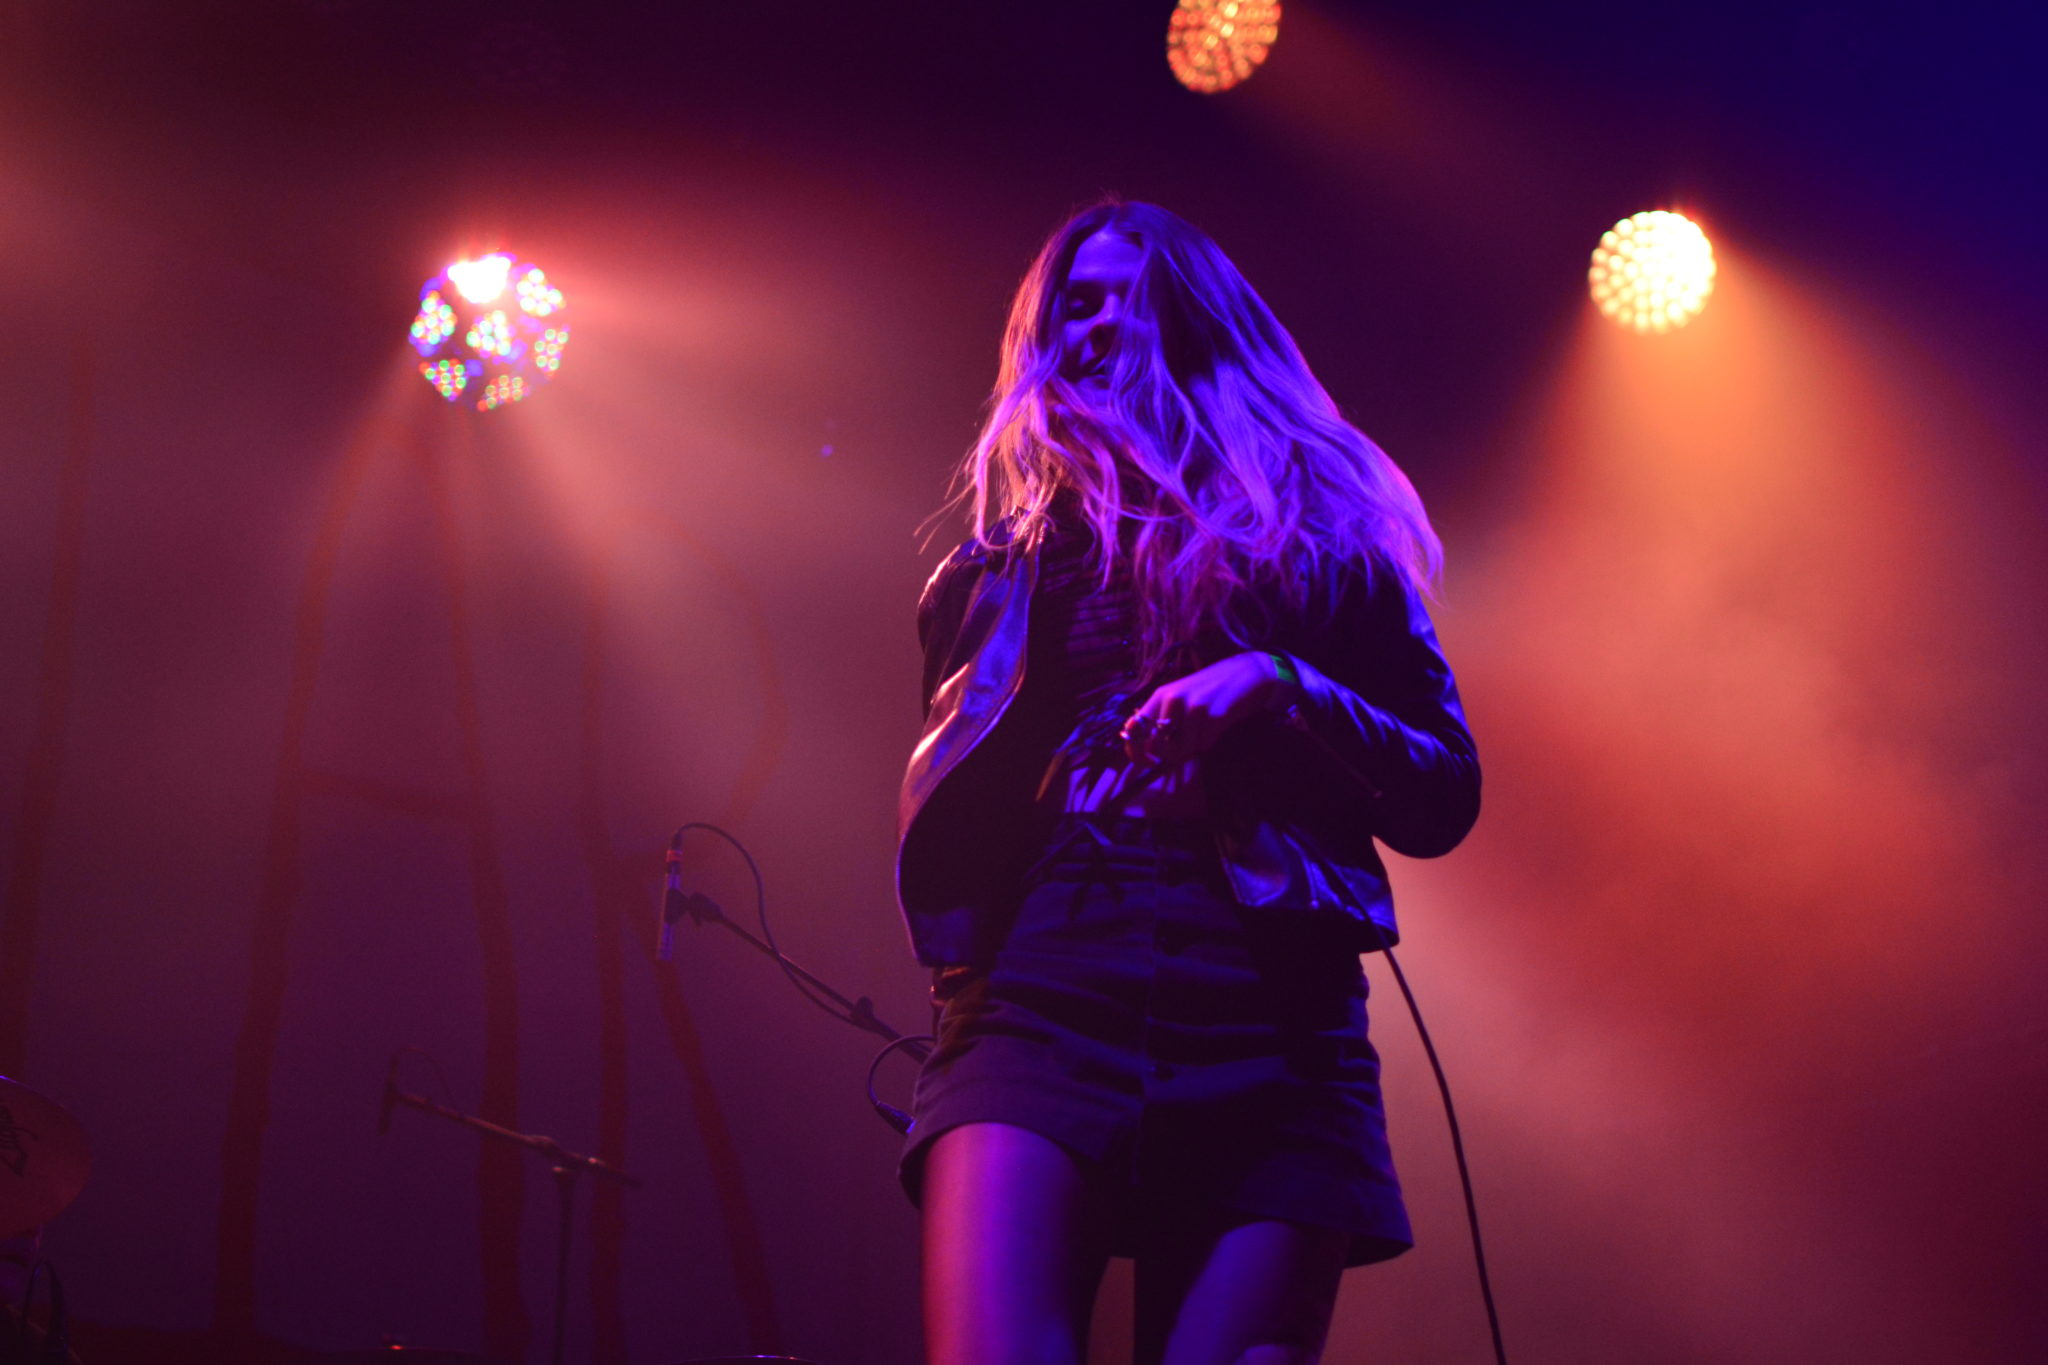 Concert Review: Side Eyes, Dilly Dally & FIDLAR